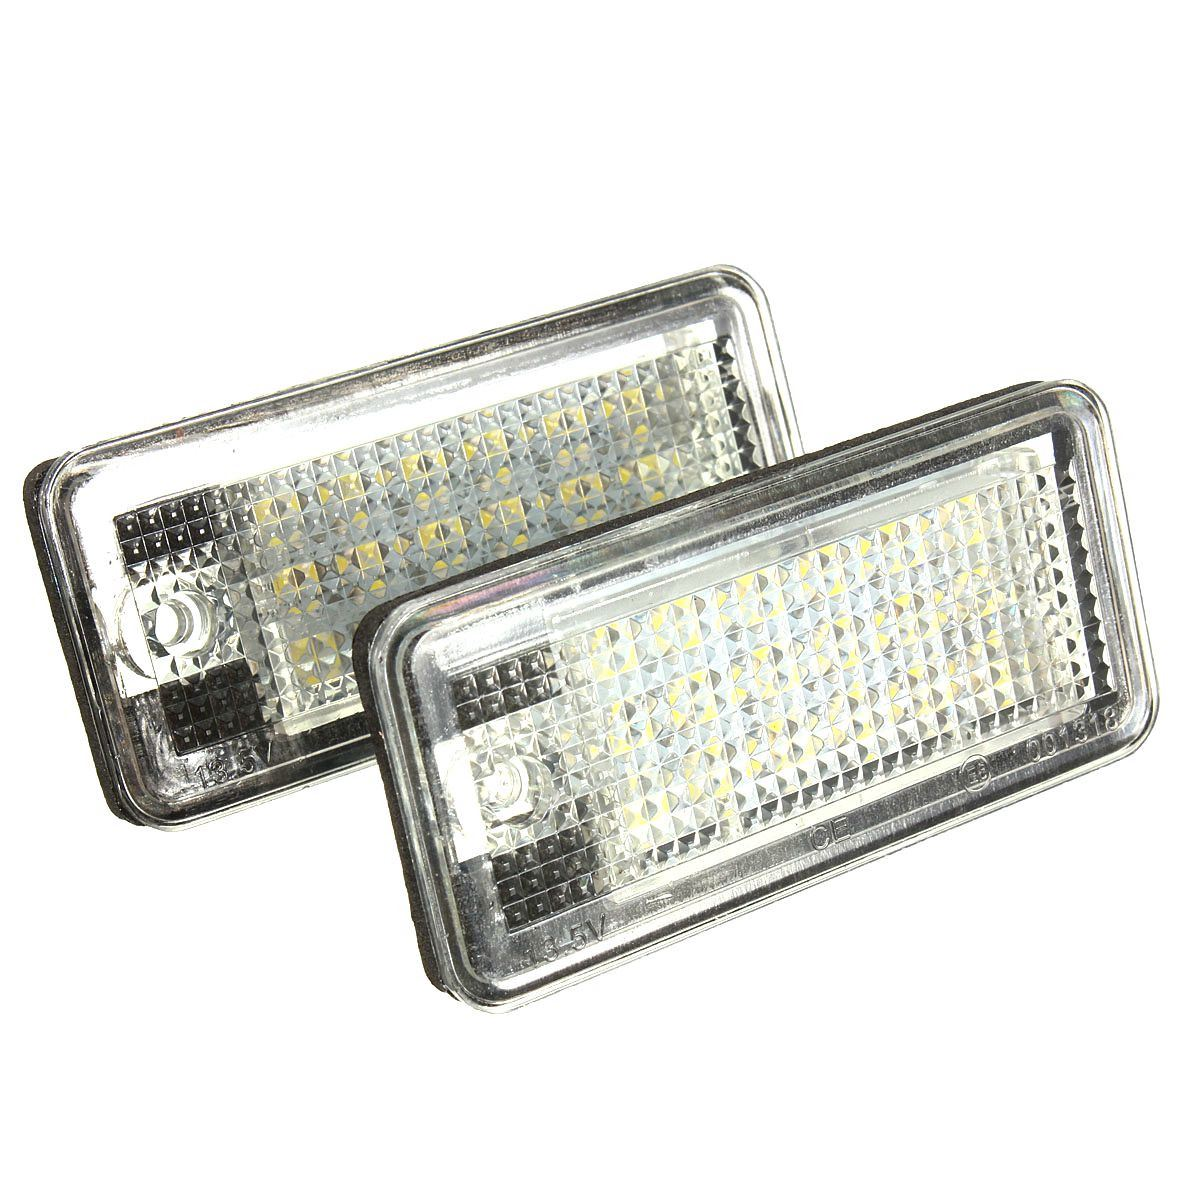 Brand New 2 White Car Error 18 LED License Number Plate Light Lamp For Audi A3 S3 A4 S4 B6 B7 A6 S6 A8 Q7 0001108175 0986018340 458211 new starter for audi a4 a6 quattro volkswagen passat 2 8 3 0 4 2 l